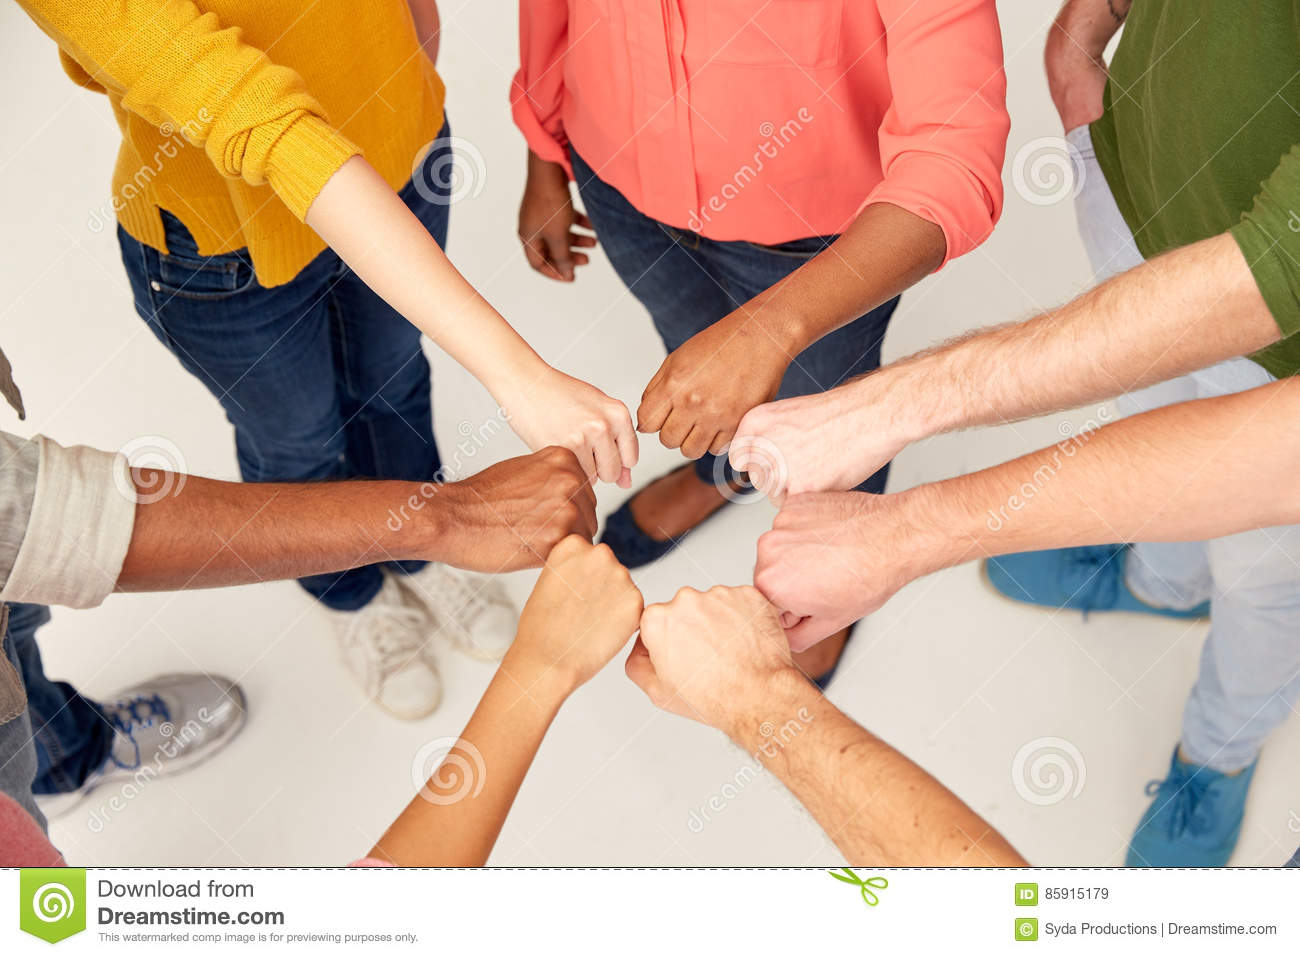 Fist bump stock photos royalty free images hands of international people making fist bump teamwork friendship international gesture and m4hsunfo